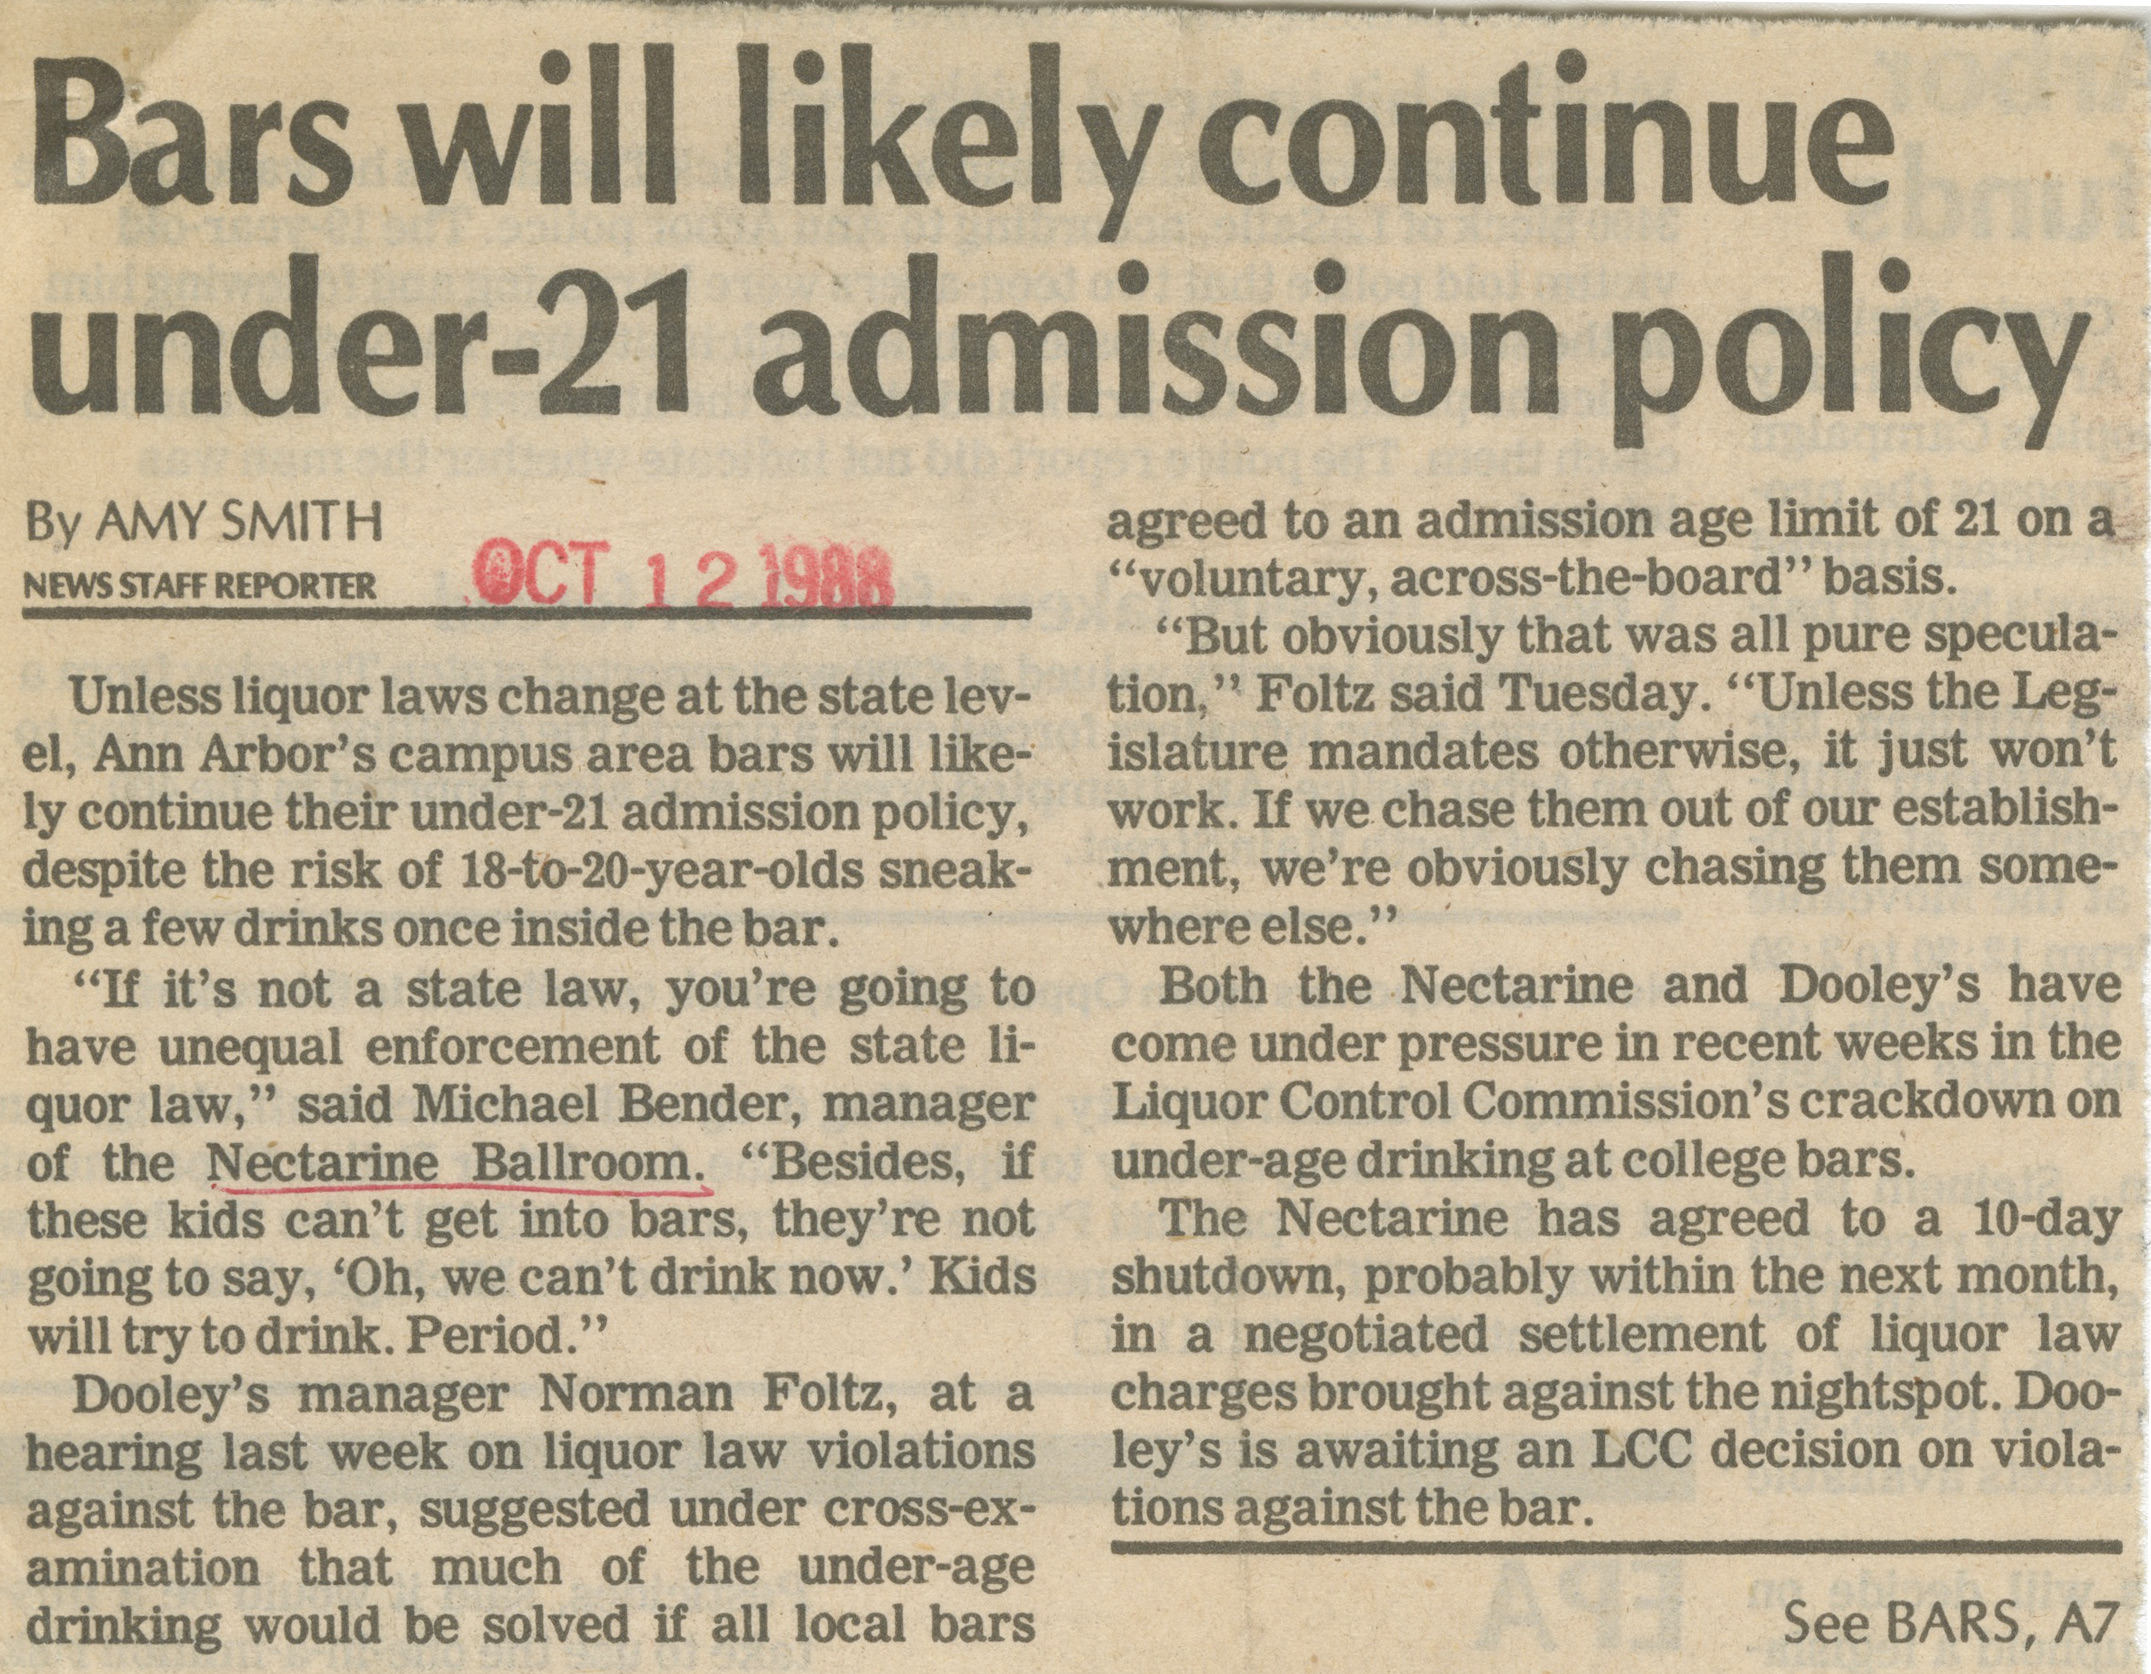 Bars will likely continue under-21 admission policy image